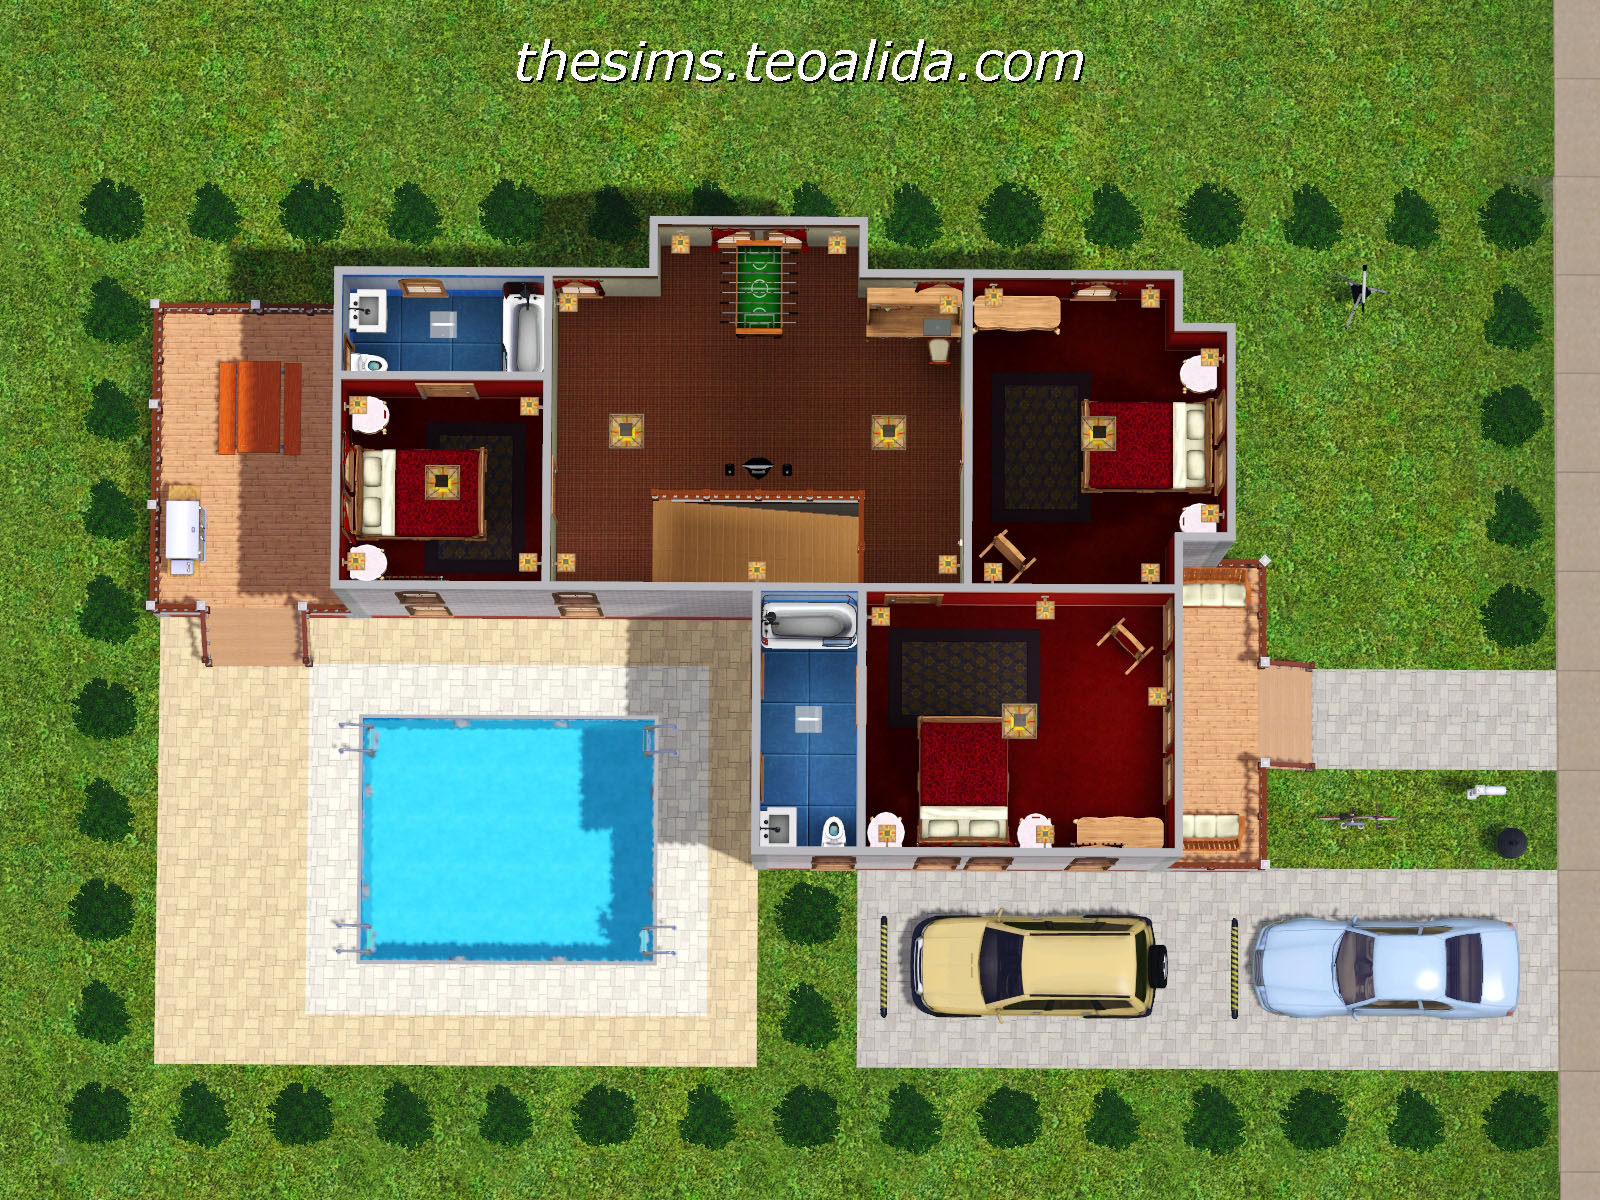 L Shaped House. The Sims house downloads  home ideas and floor plans   Part 5